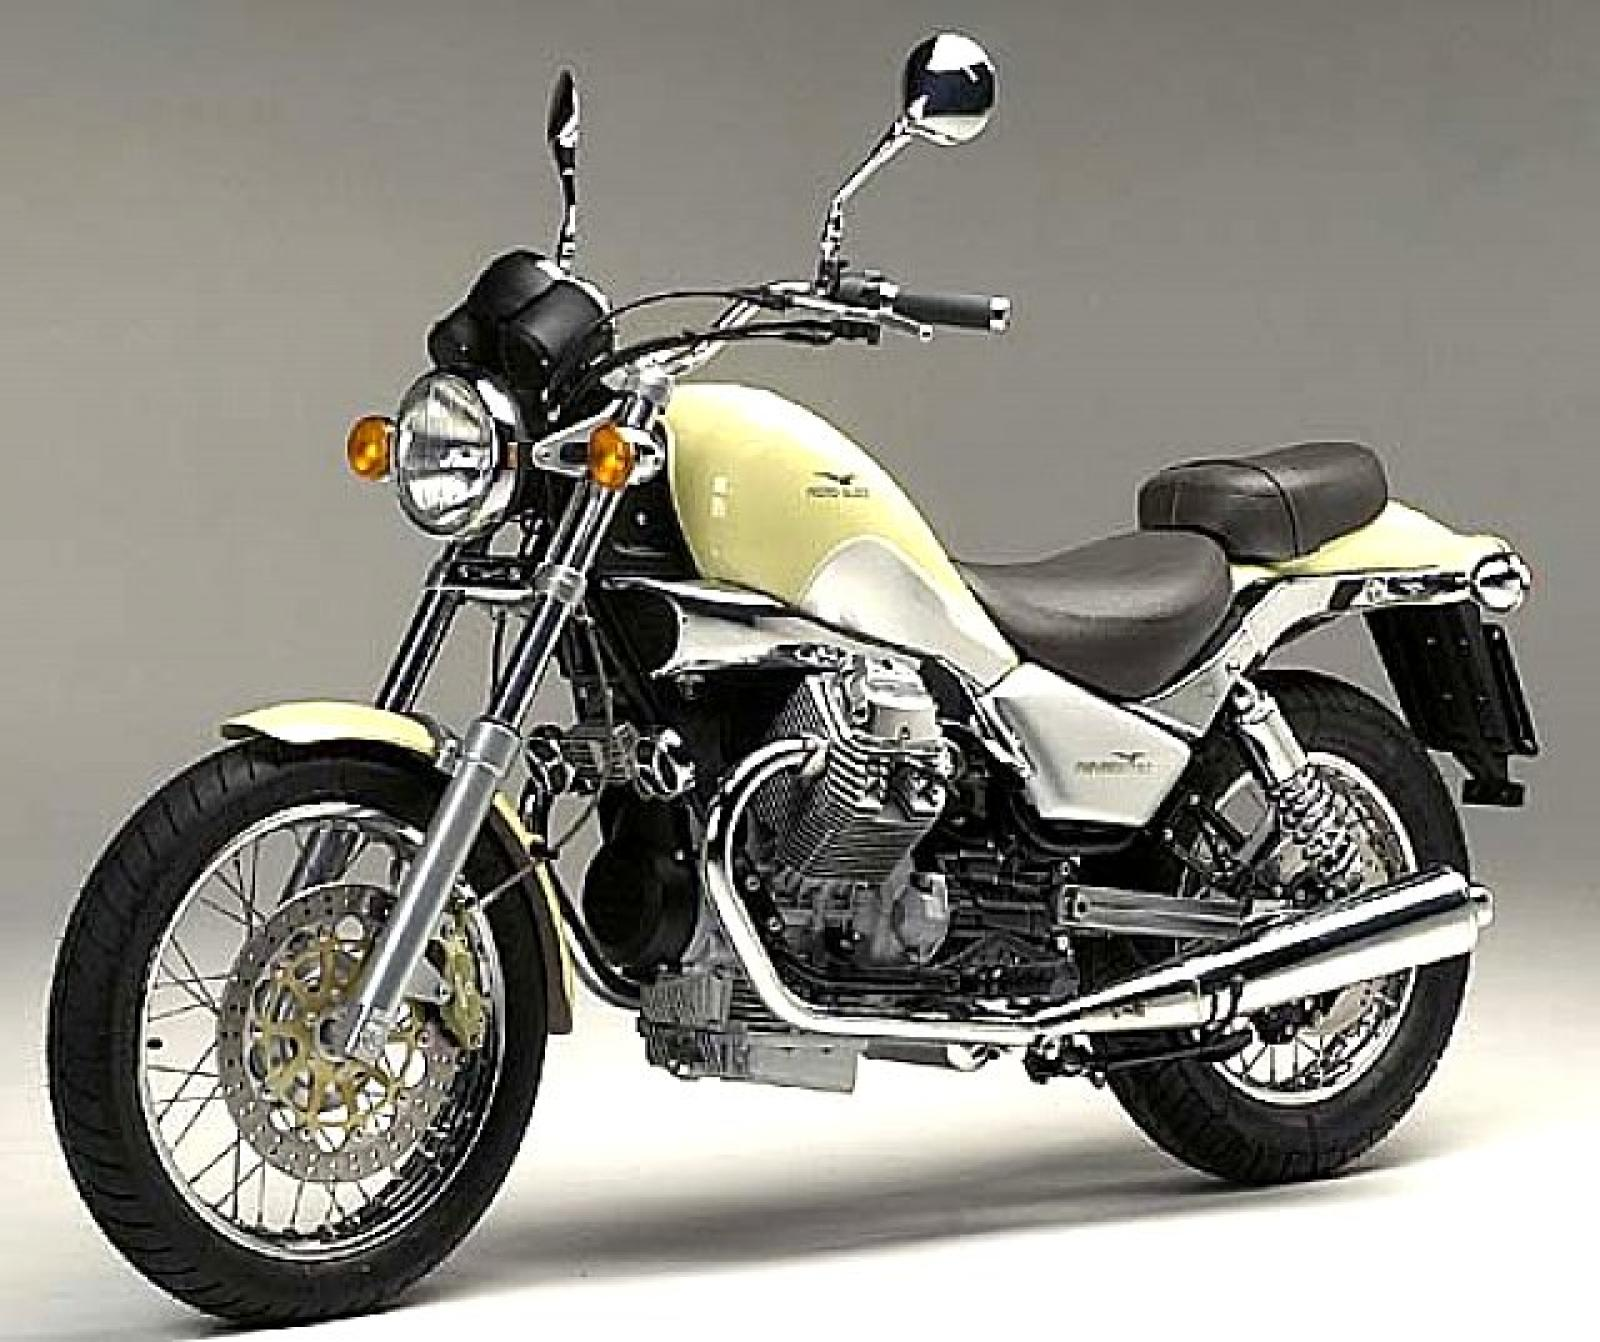 Moto guzzi nevada photo - 6